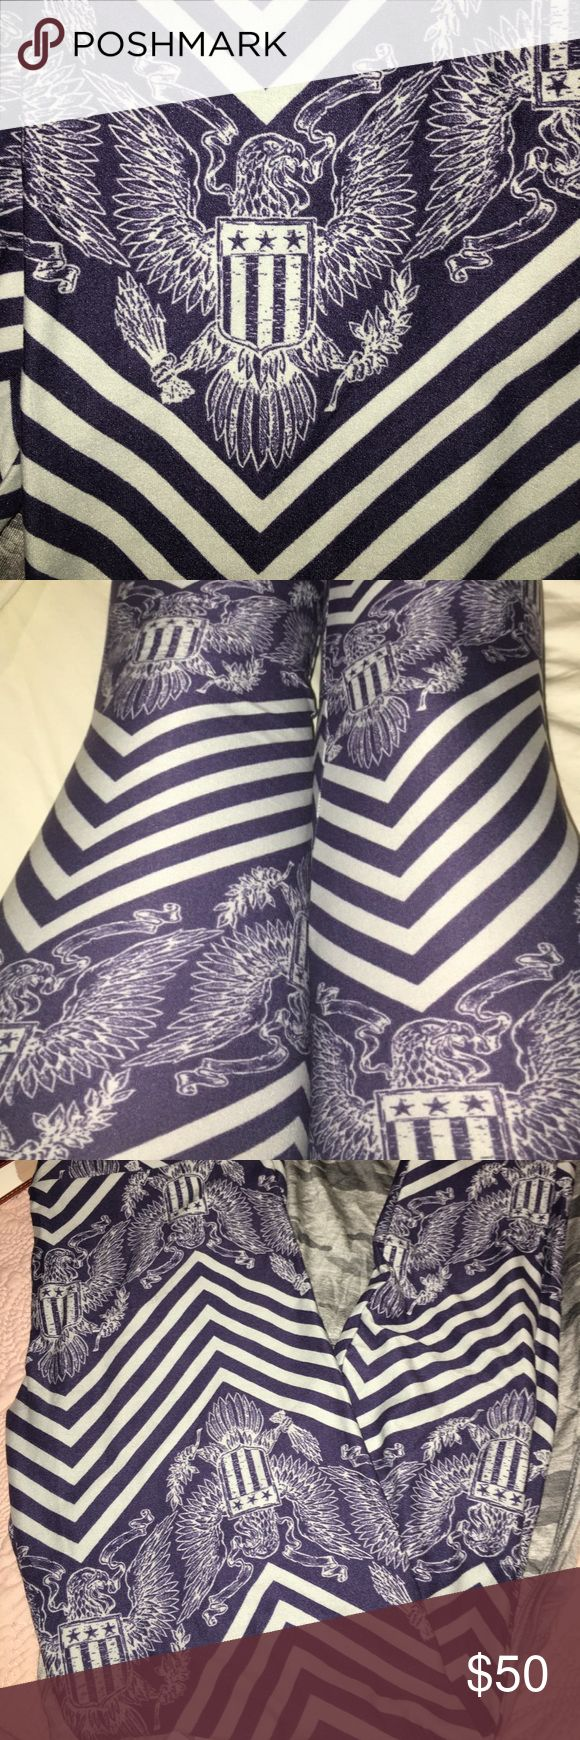 Lularoe Ealge/Chevron Leggings OS Worn once to try on (and take pic), NWOT, perfect condition, navy & grey. Presidential Seal (Eagle) & Chevron. Paid $60, I understand that the original price of LulaRoe Leggings is generally $25 plus shipping, but these are part of the Americana Collection, and I paid more to get them. LuLaRoe Pants Leggings